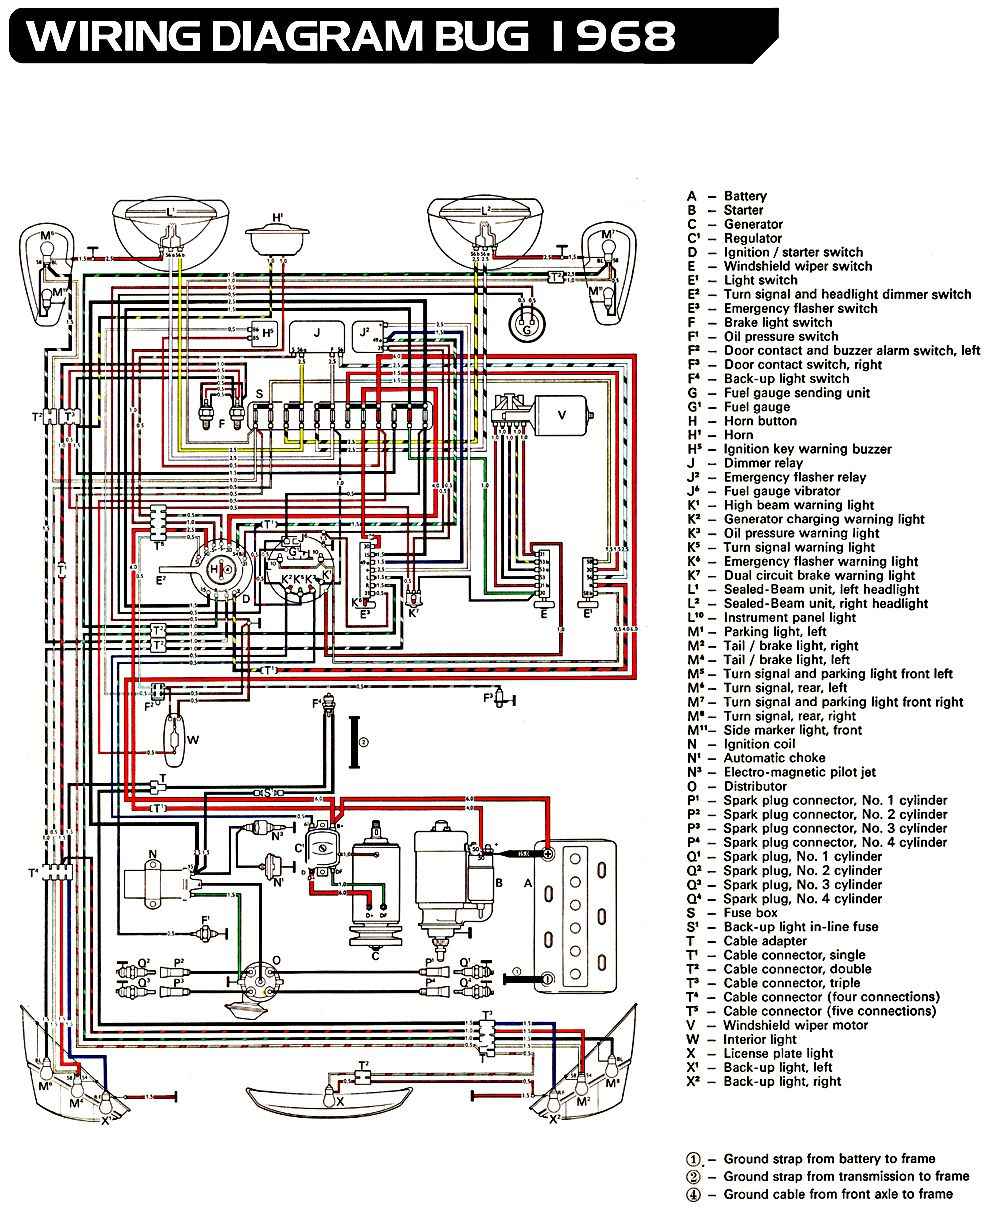 3a1908112d3826270ed5e3be362292bf vw bug ignition wiring diagram 73 vw wiring diagram free Electrical Wiring Diagrams at gsmx.co